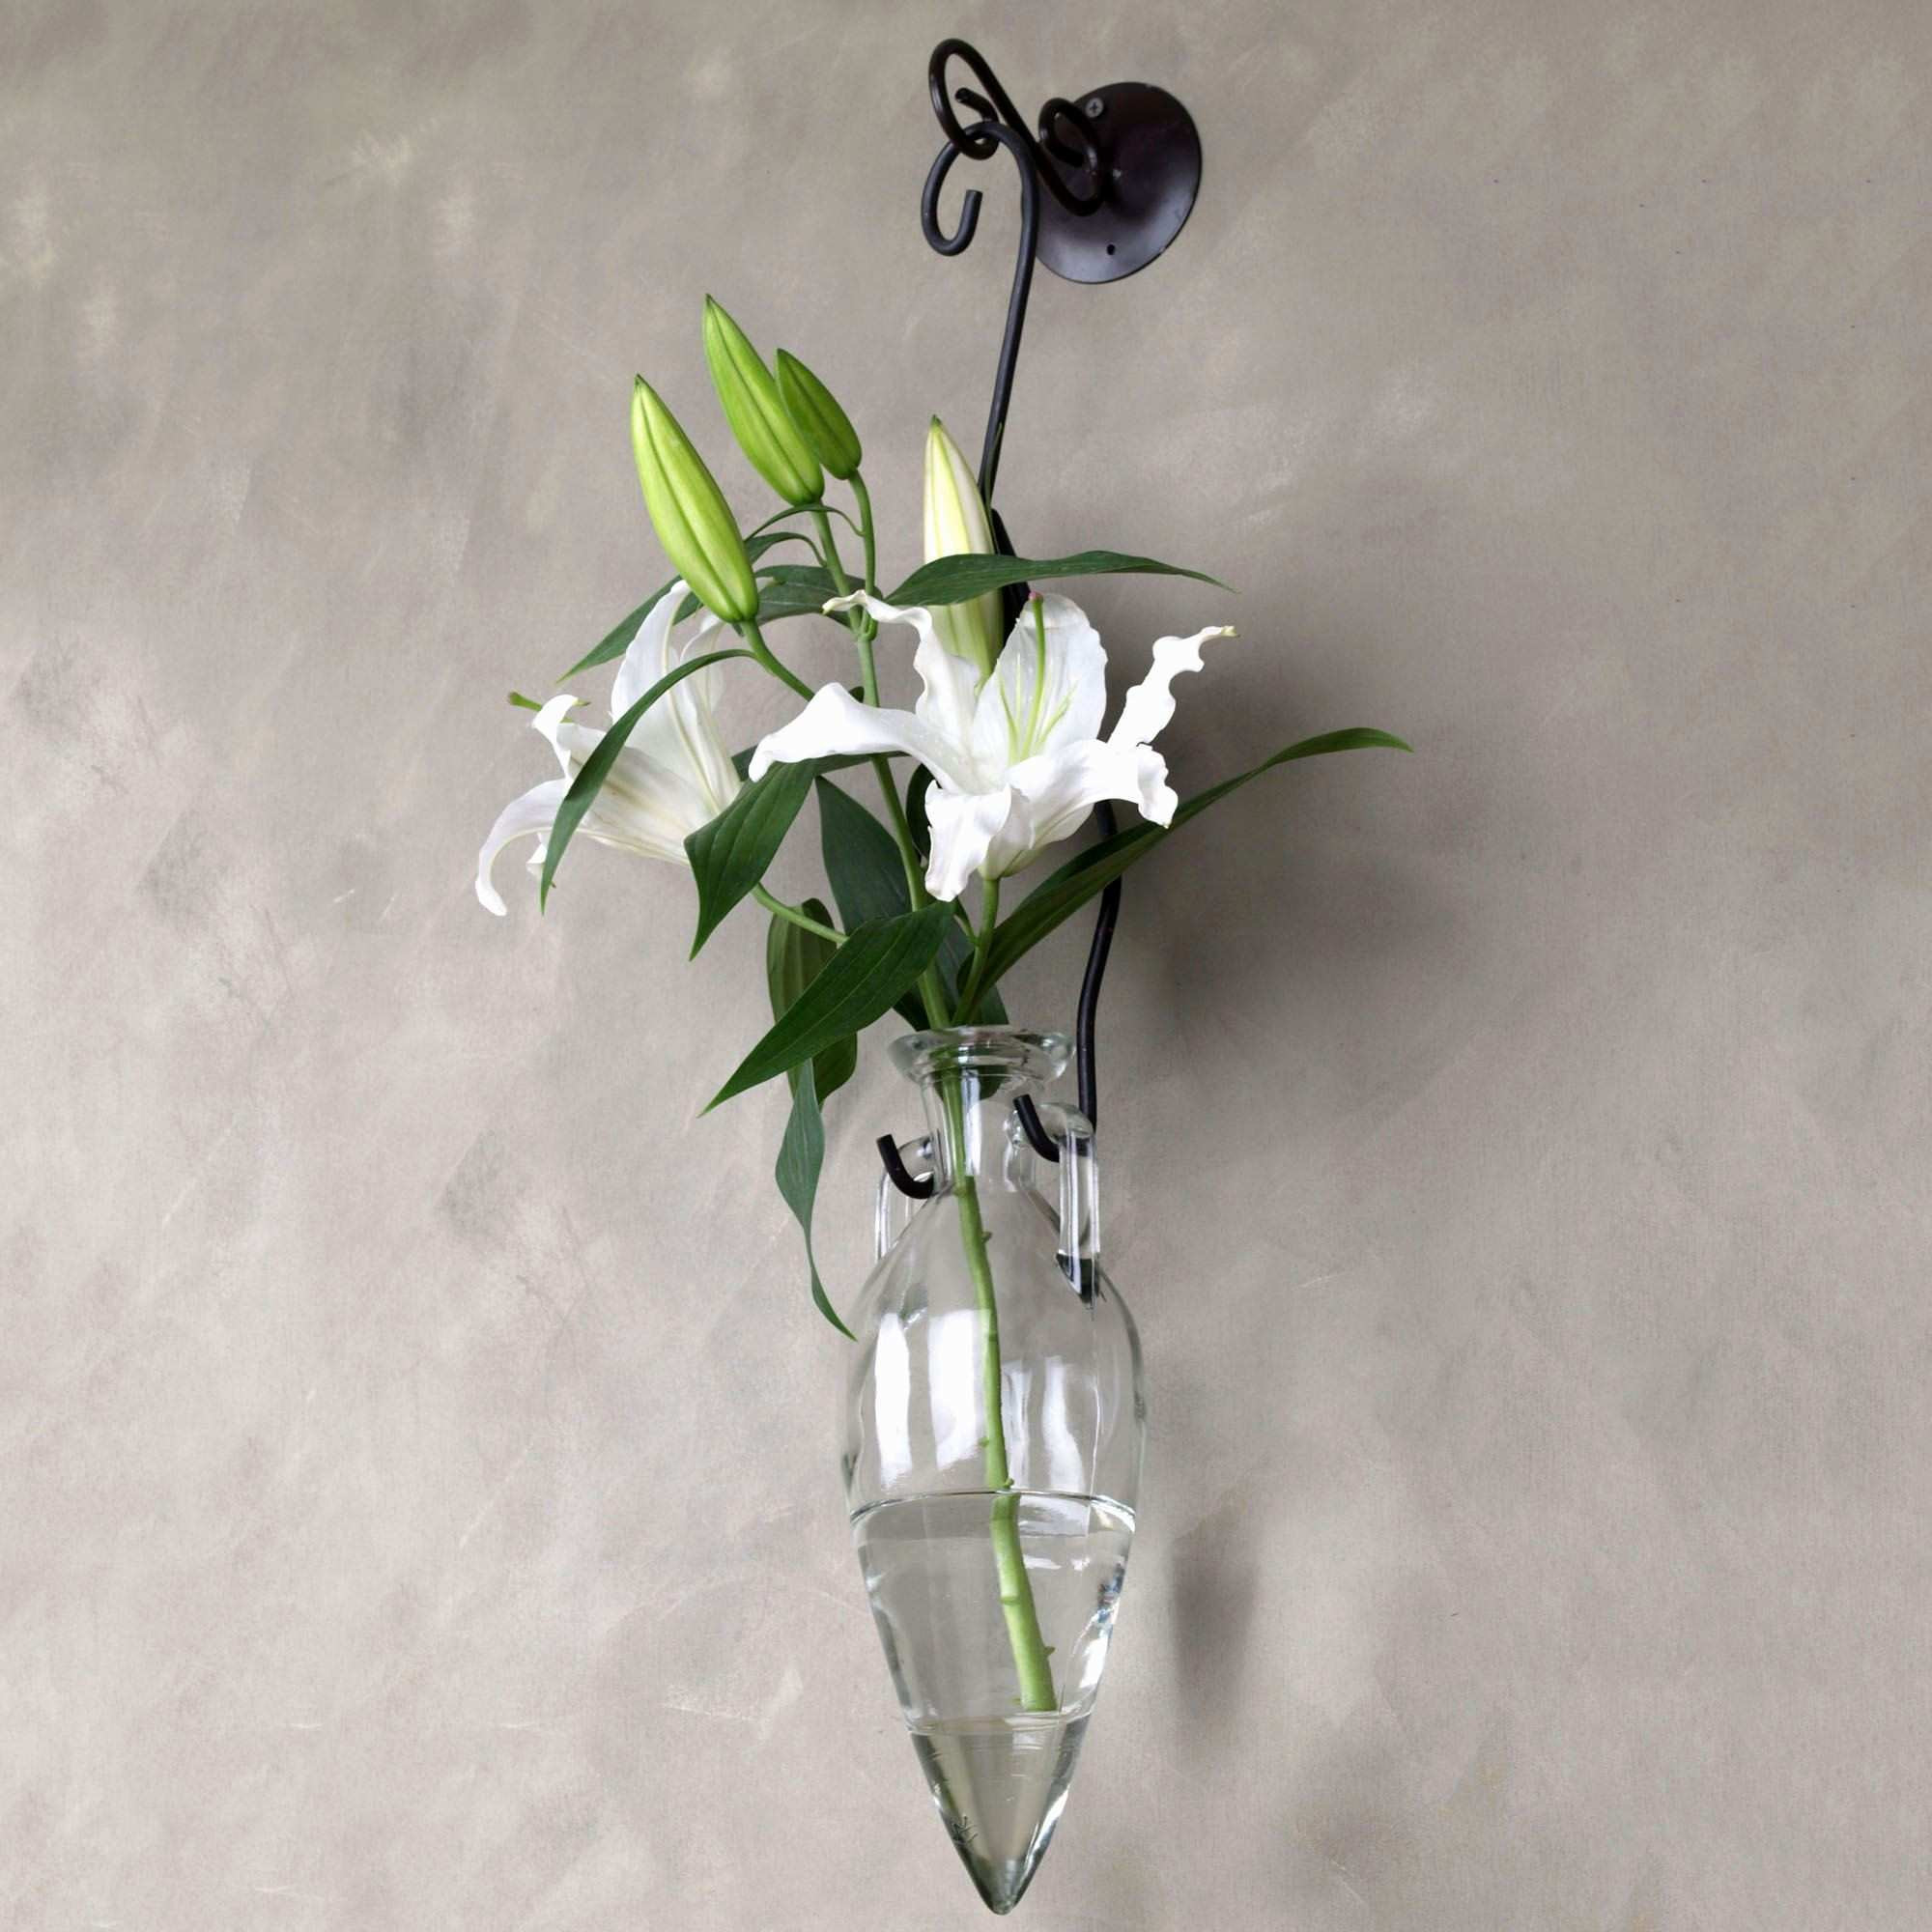 arranging flowers in a round vase of floral mirror wall decor best of wall floral arrangements fresh h in floral mirror wall decor best of wall floral arrangements fresh h vases wall hanging flower vase